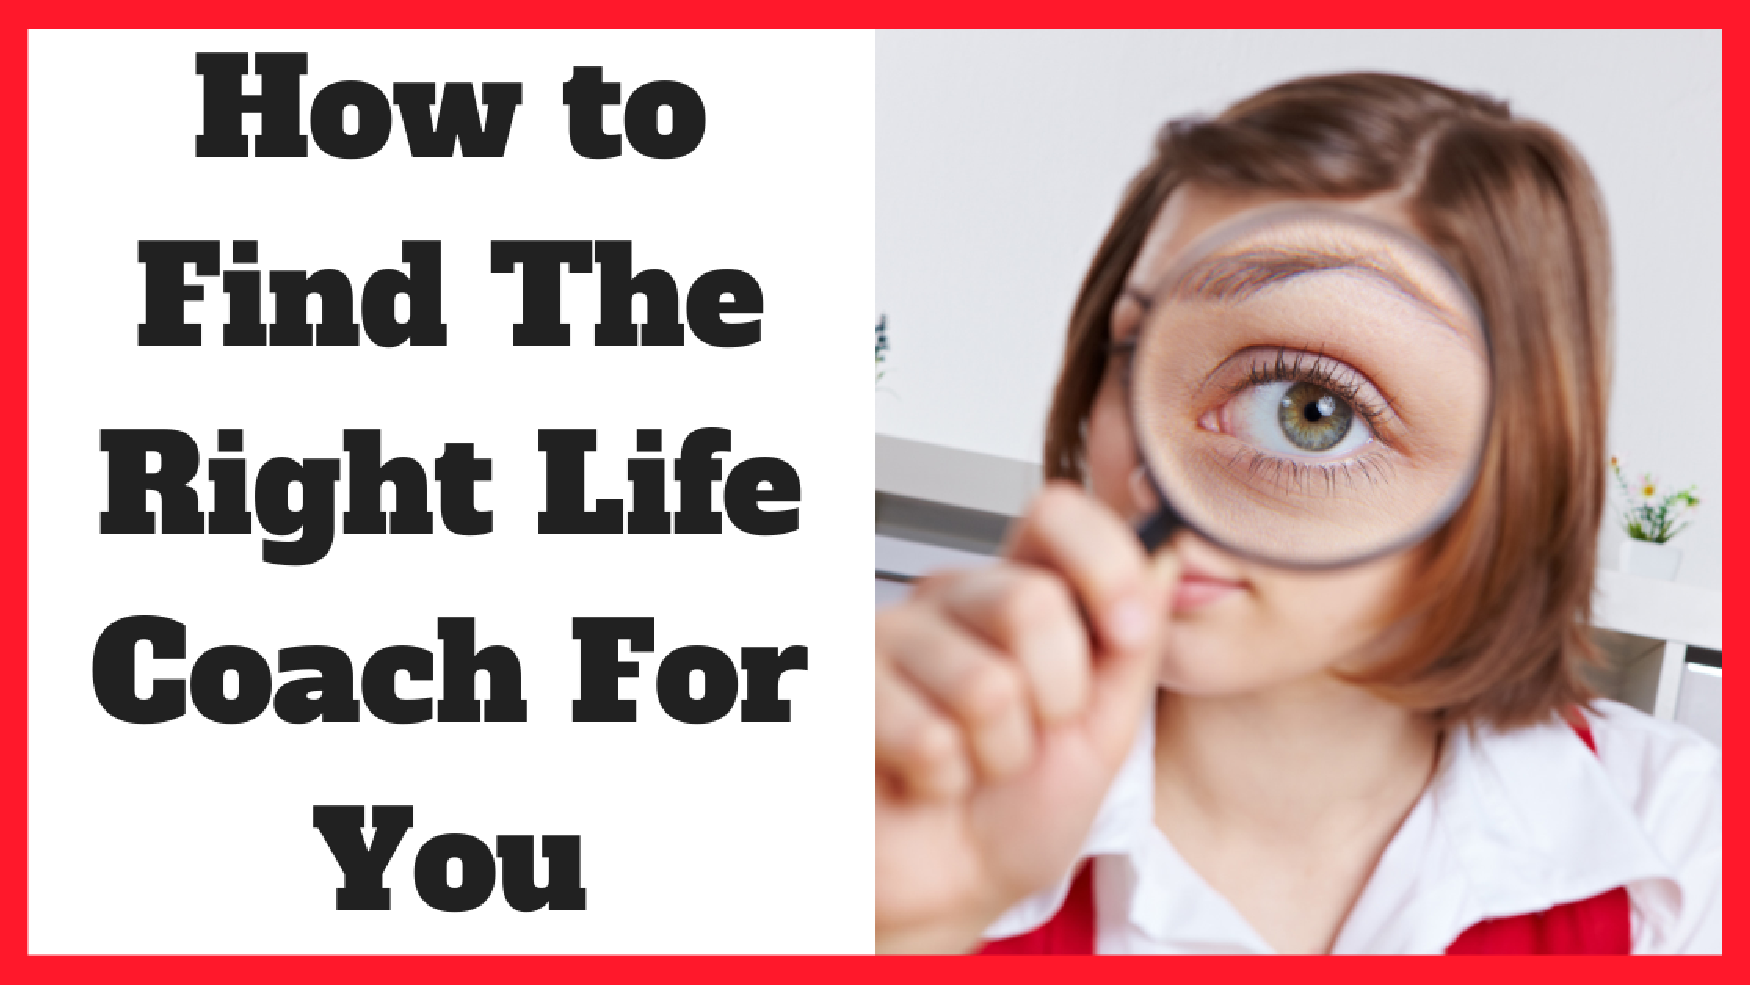 How To Find The Right Life Coach For You